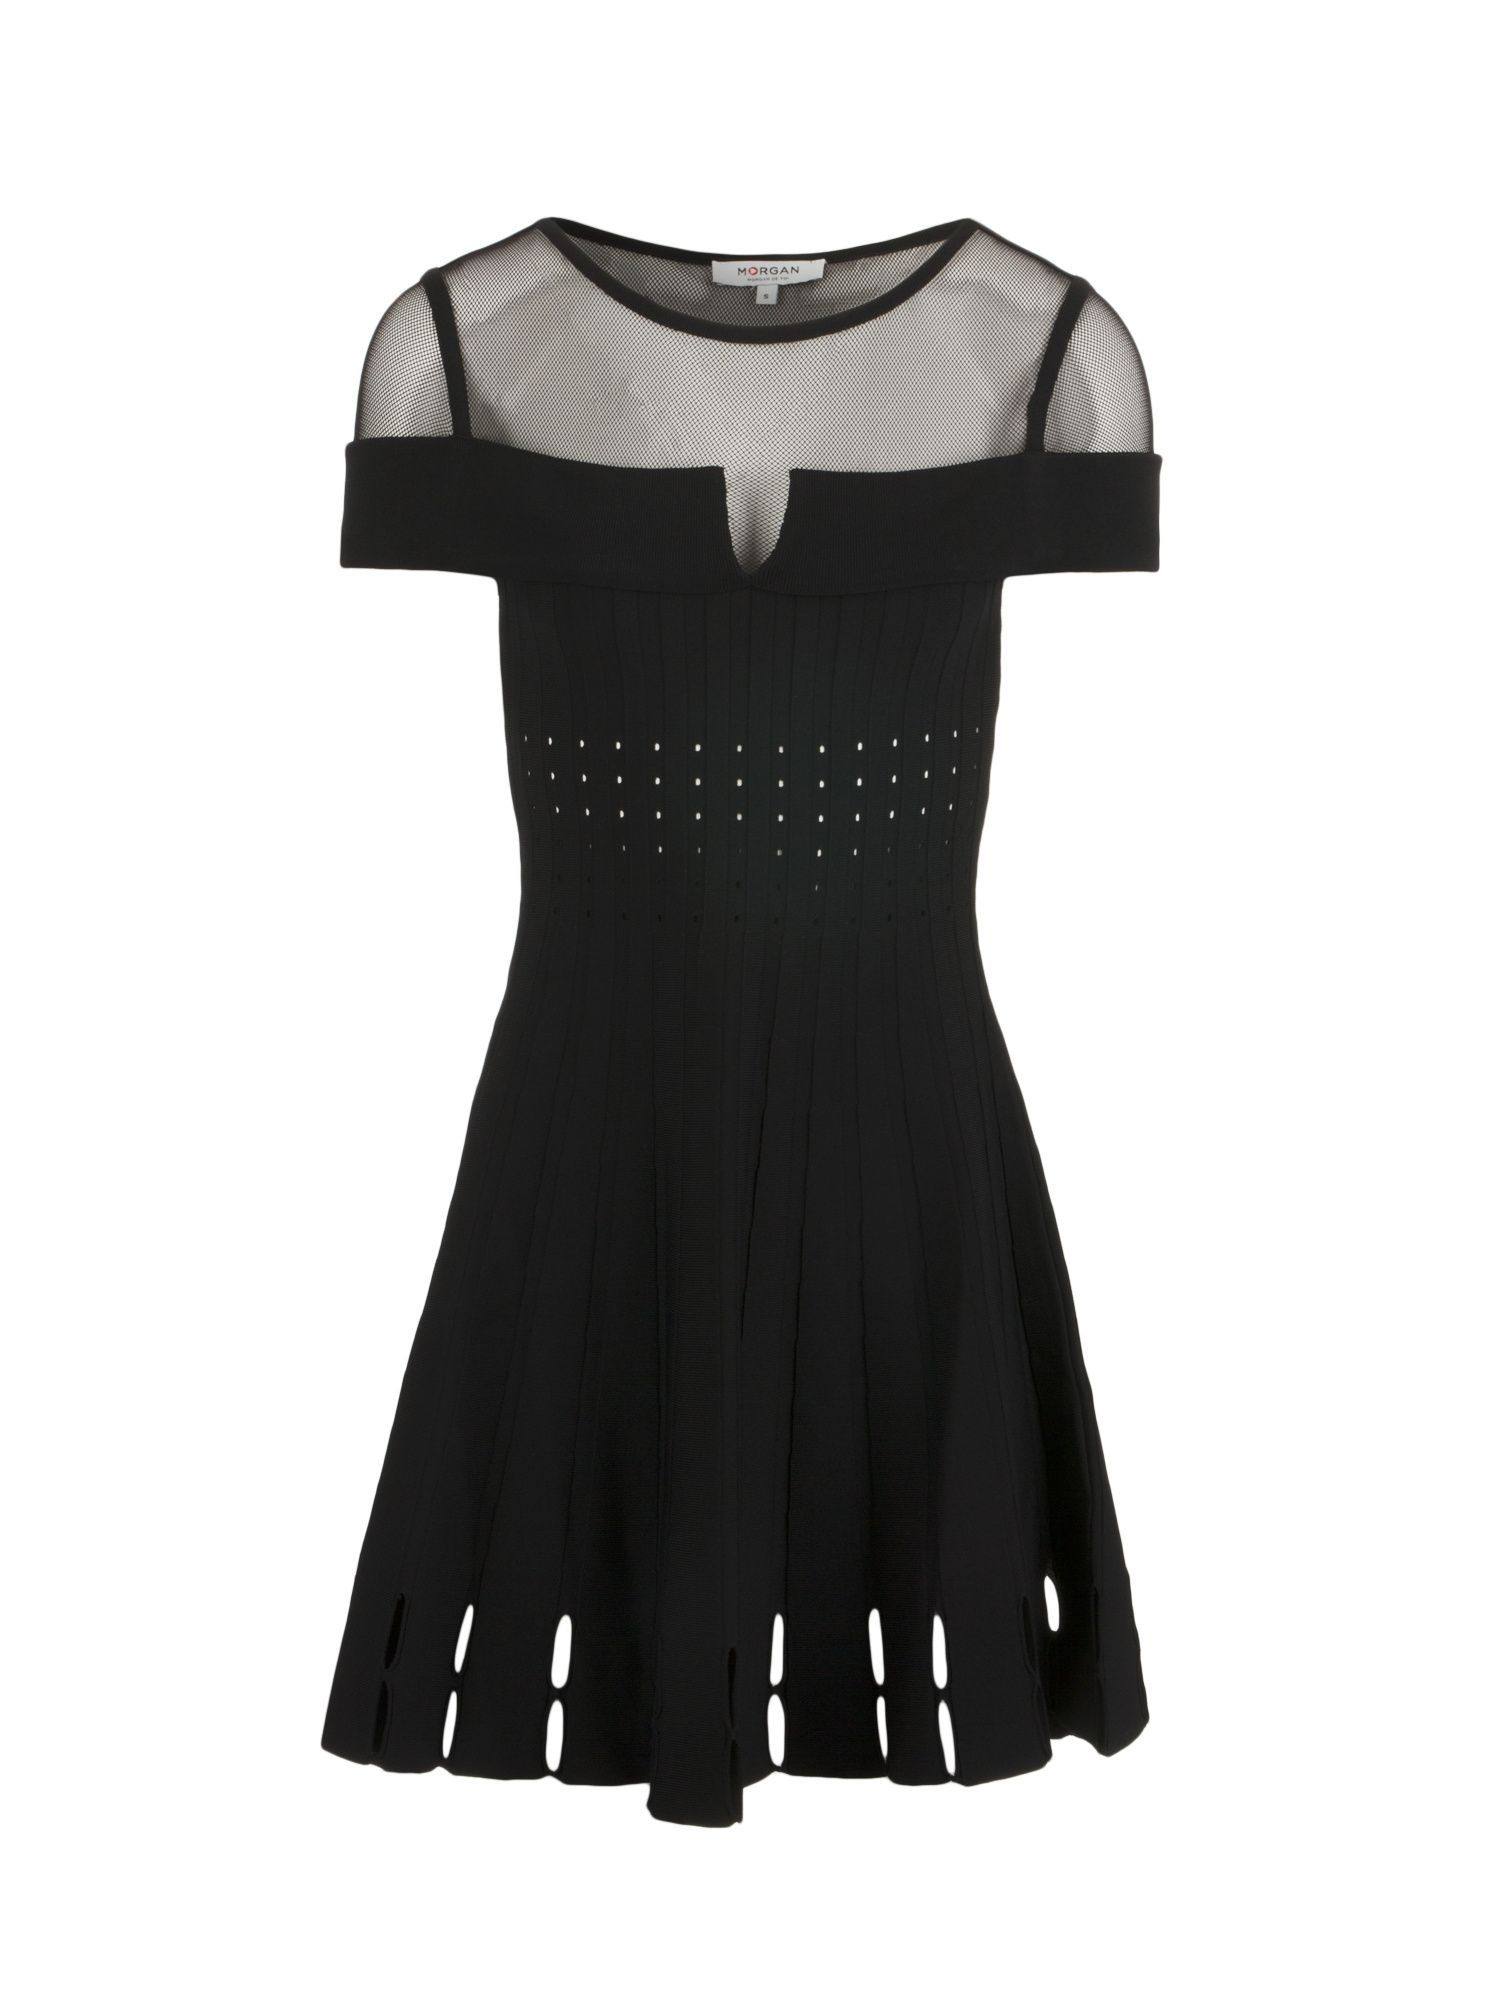 Morgan Openwork Knit And Mesh Dress, Black